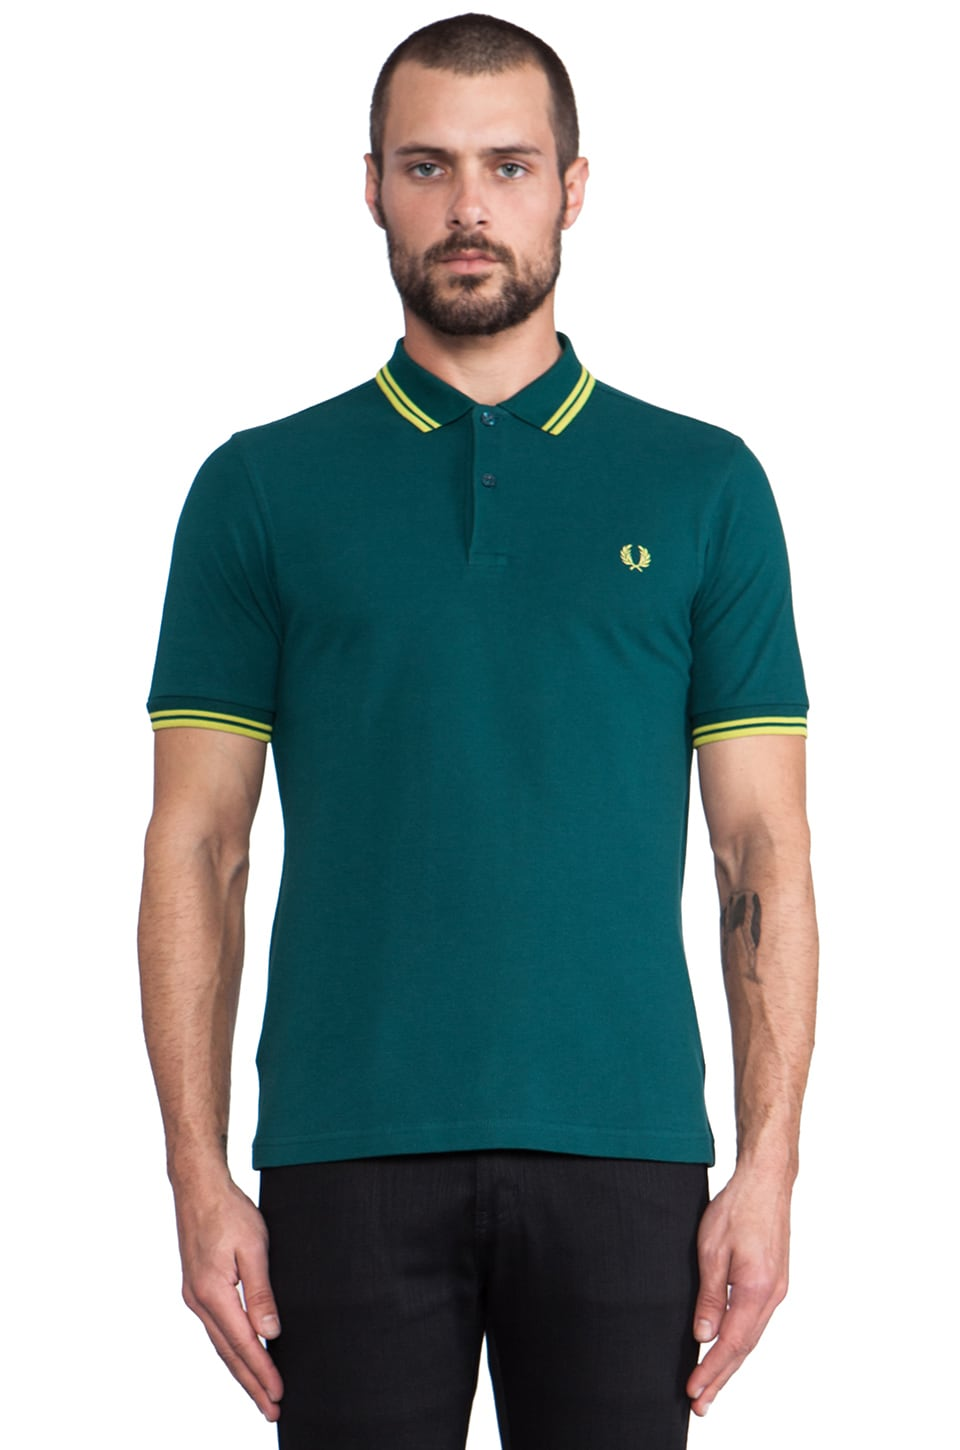 Fred Perry Twin Tipped Shirt in Dark Teal/Luminary Green